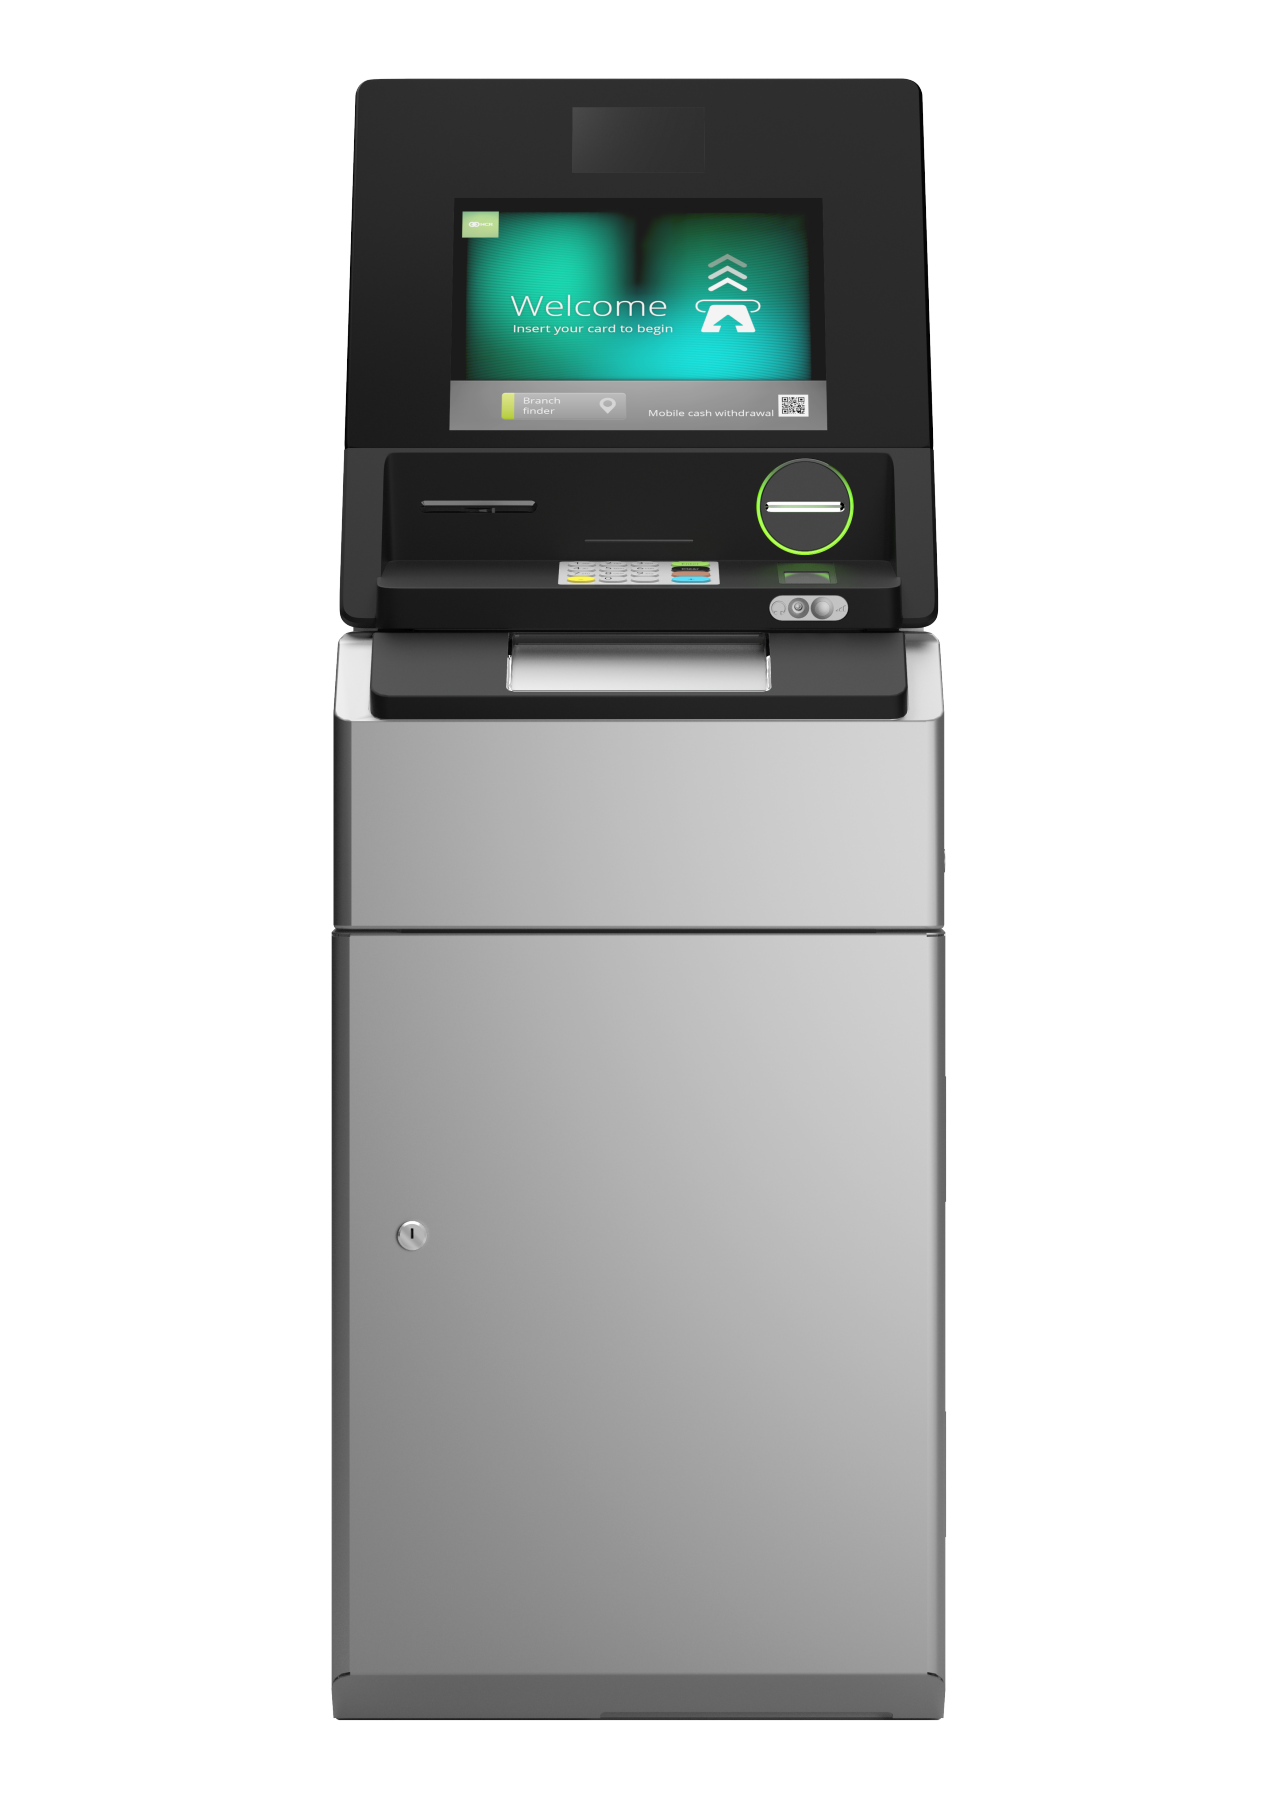 Front view of NCR SelfServ 83 - Interior Freestanding Cash Recycling ATM